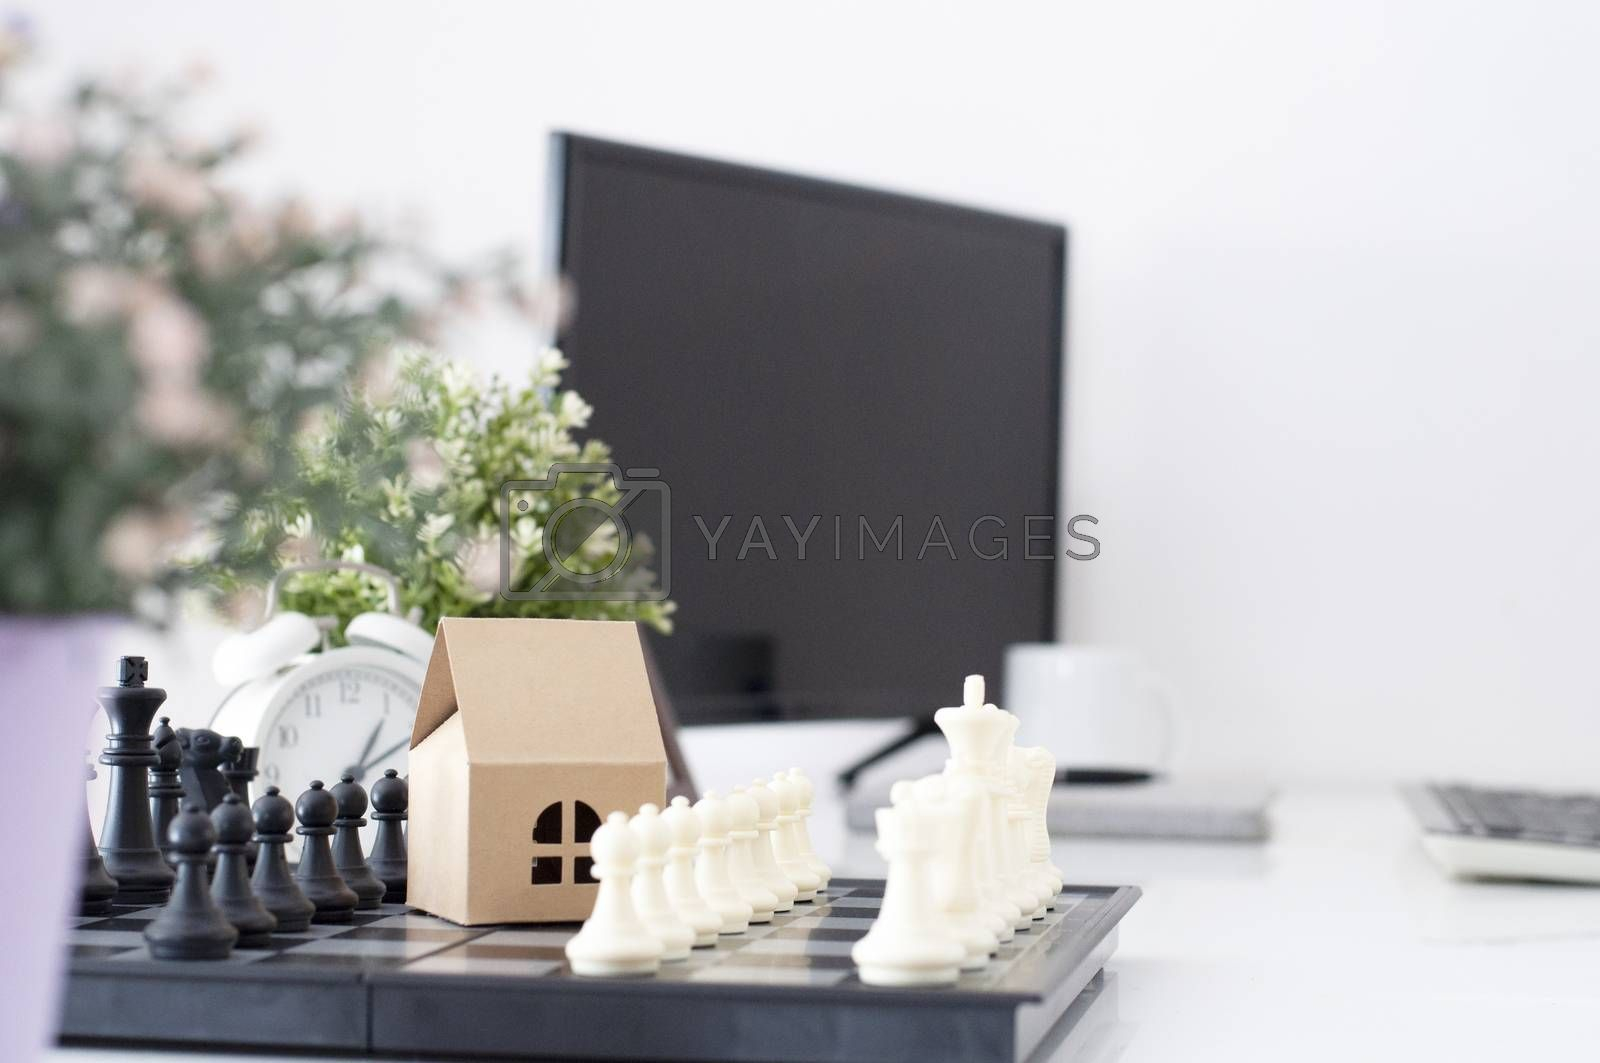 Home  sweet home. Financial business. Home loan. Real estate strategy. Home mock up on chess board. home Economic strategy on work table. home Financial business strategy.Real estate planning management.